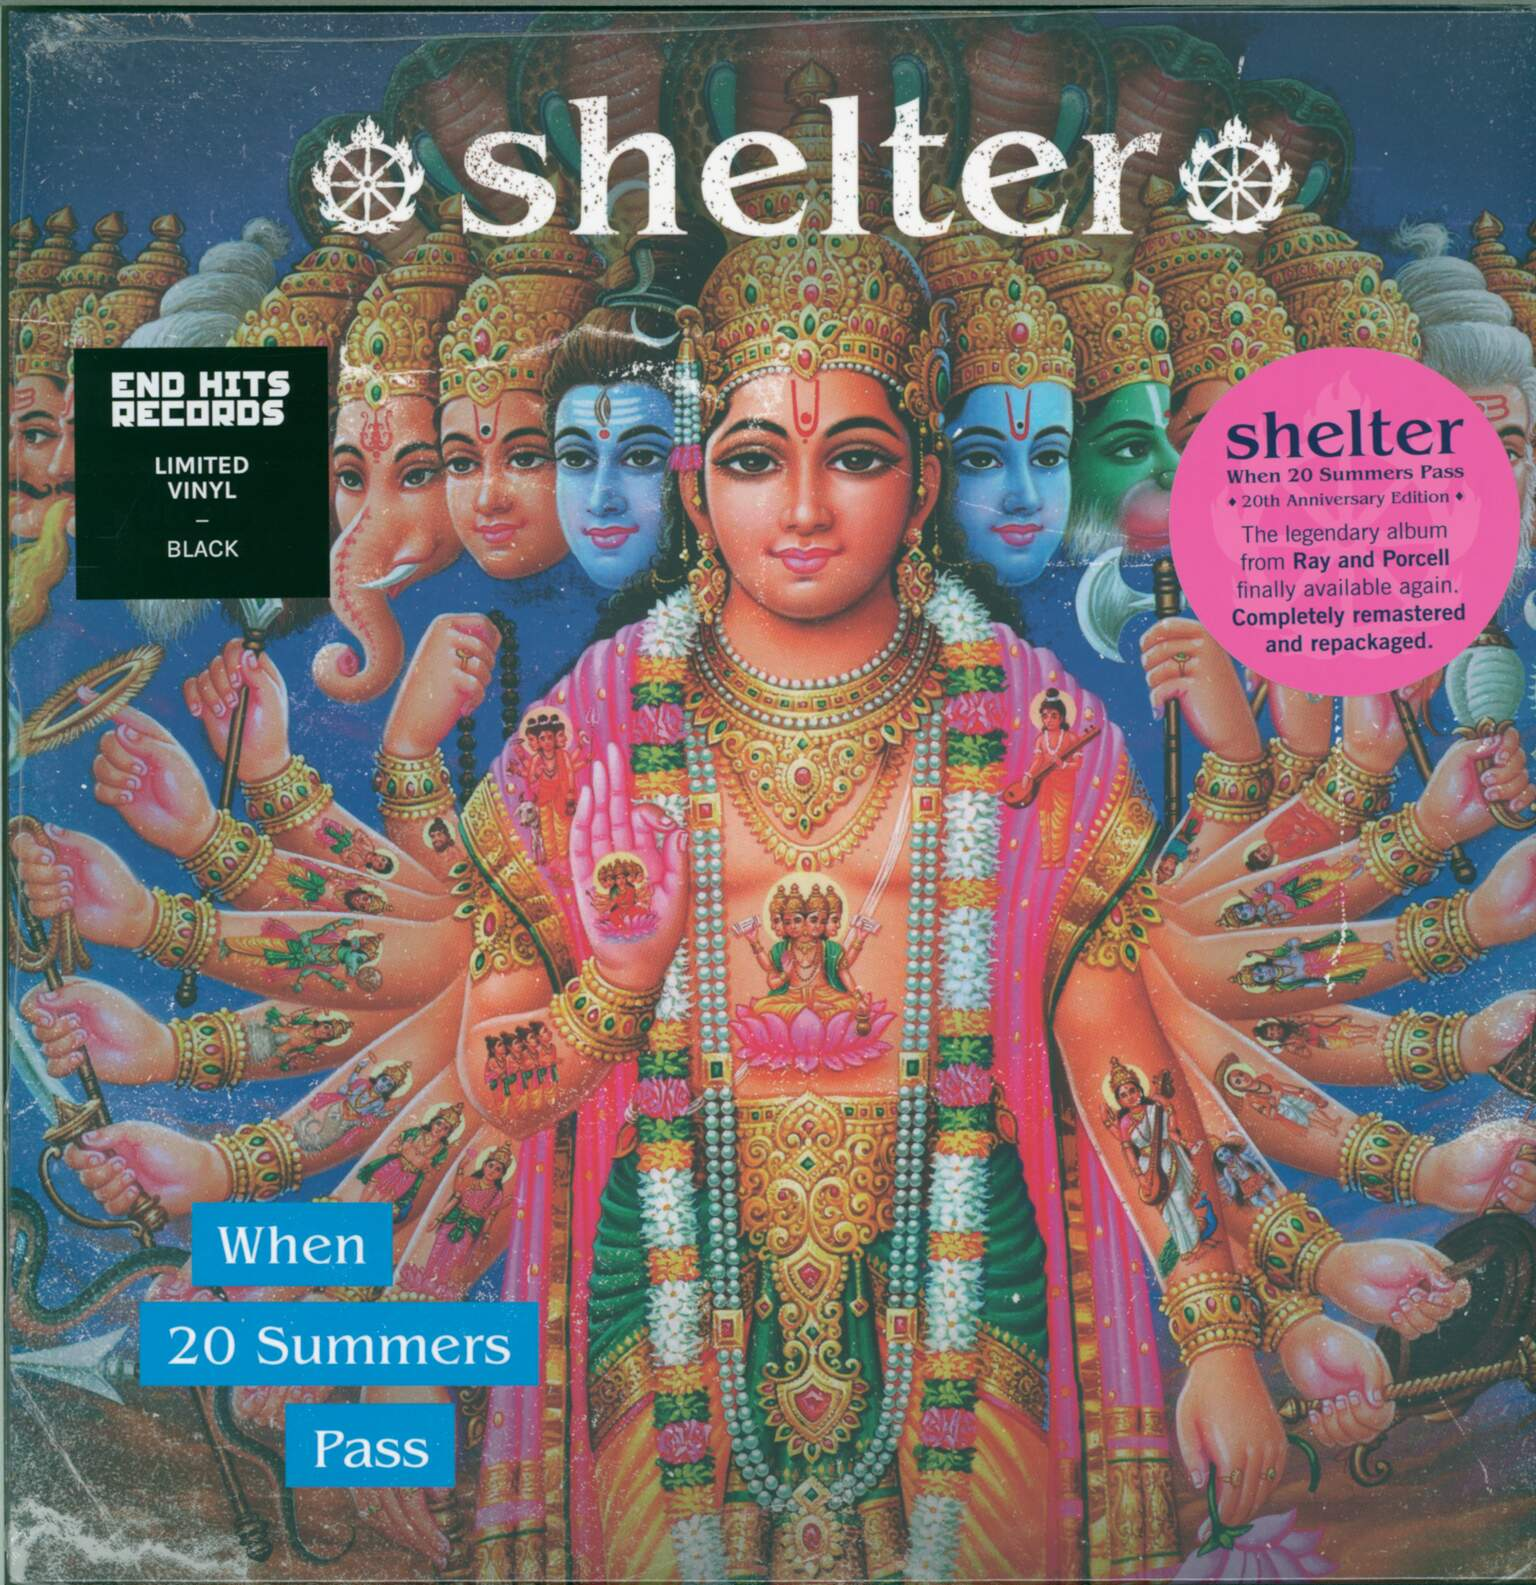 Shelter: When 20 Summers Pass, 1×LP (Vinyl)